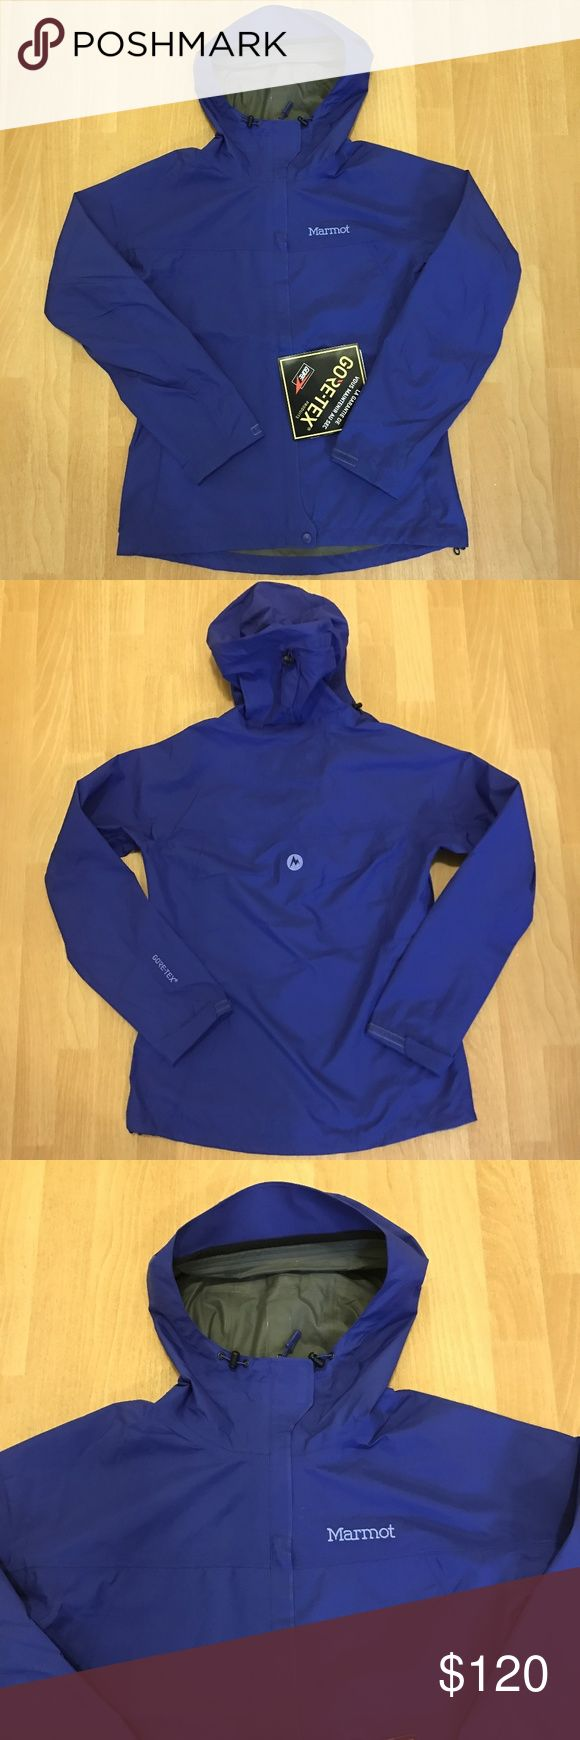 Women's Marmot Minimalist Gortex Rain Jacket NWT! Marmot Minimalist Womens Rain Jacket Gore-tex Royal Blue Small New with tags Color - Royal Night Marmot Jackets & Coats